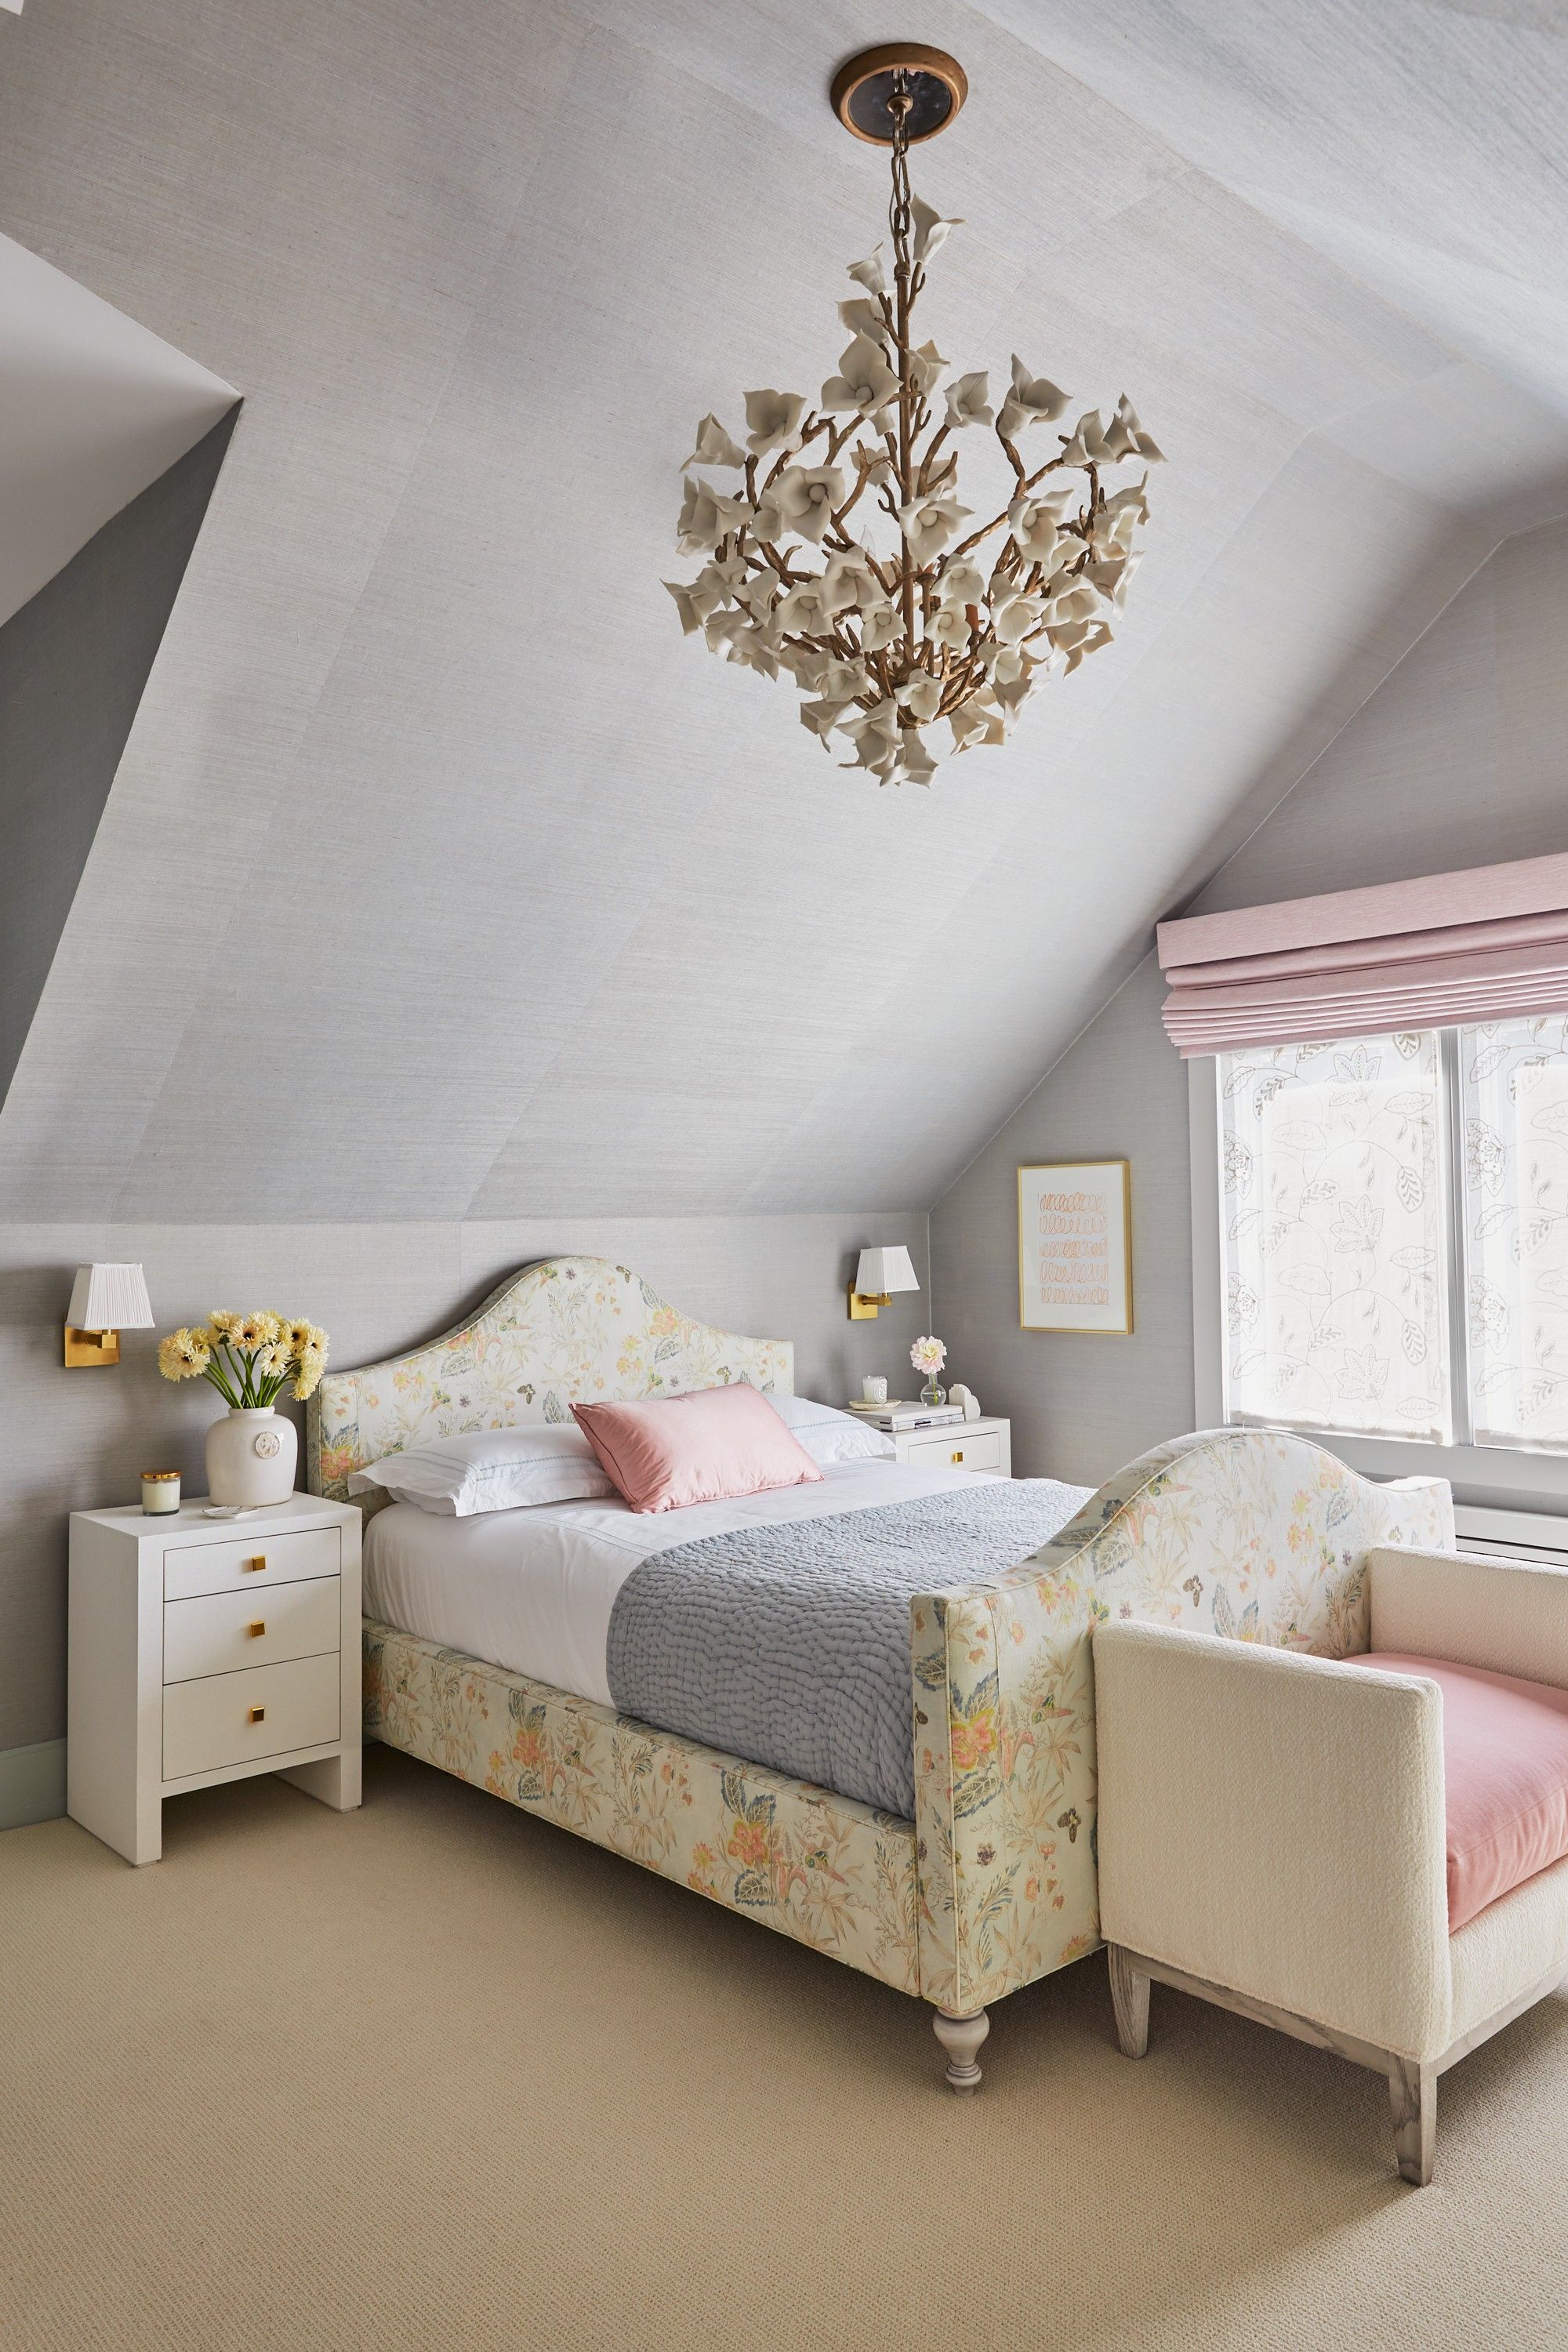 How One Interior Designer Brightens Her Kids' Rooms With